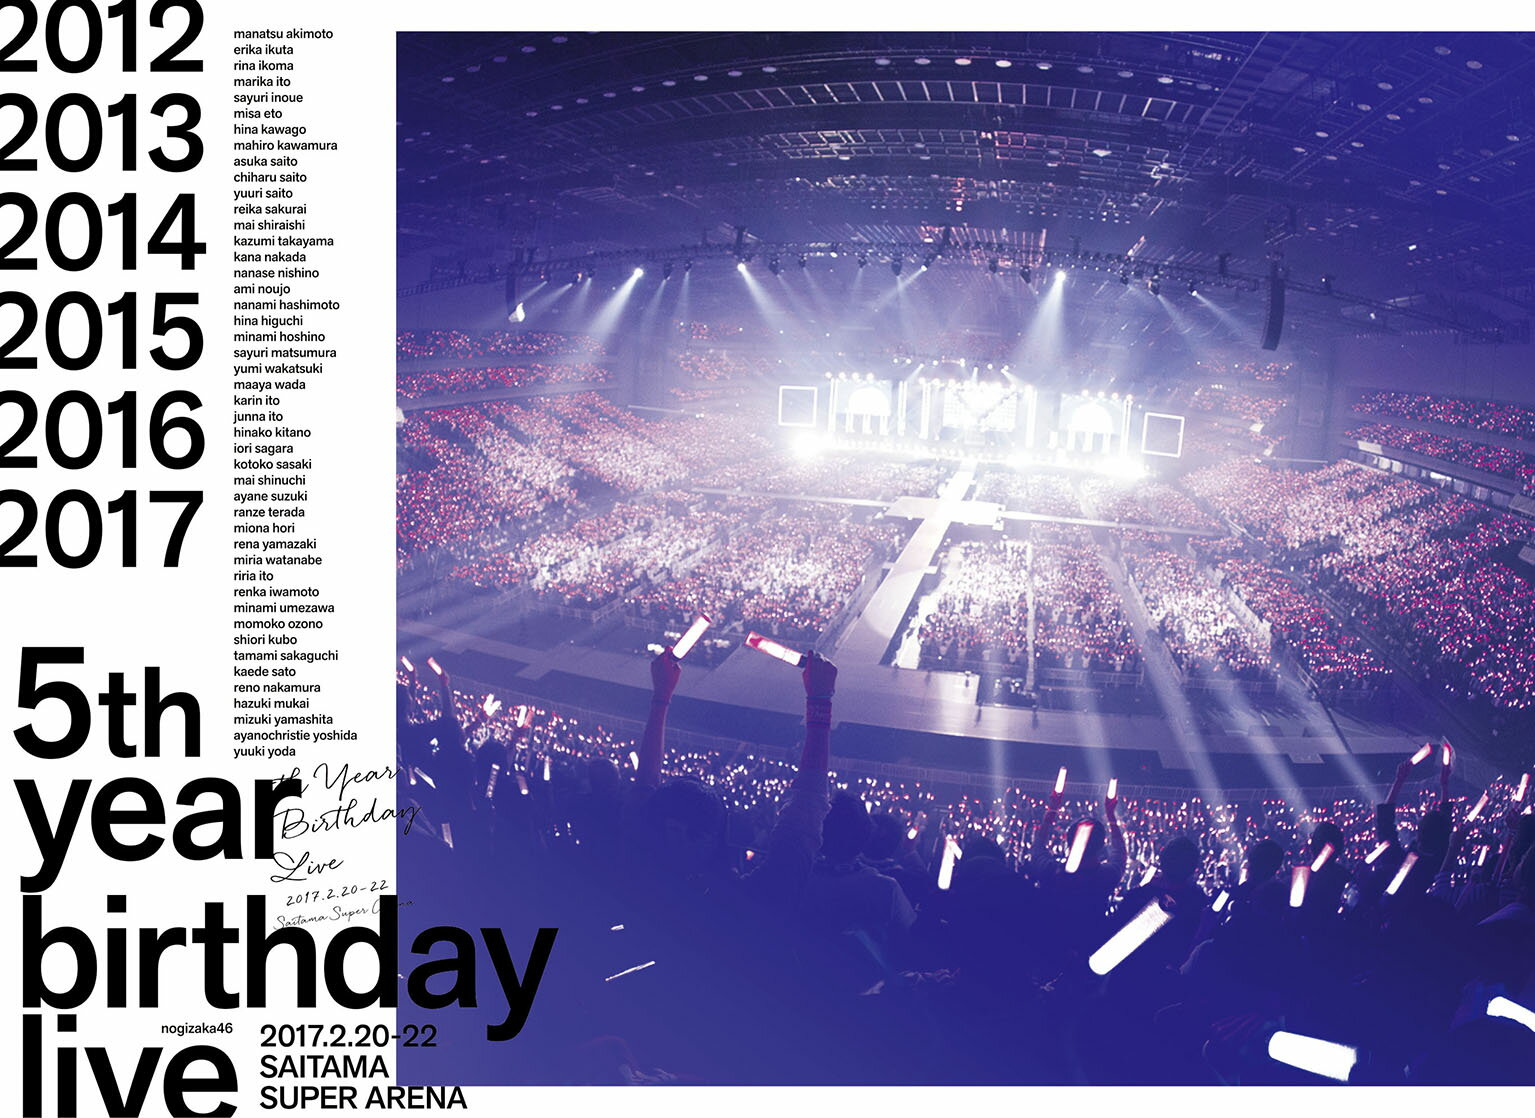 5th YEAR BIRTHDAY LIVE 2017.2.20-22 SAITAMA SUPER ARENA(完全生産限定盤)画像